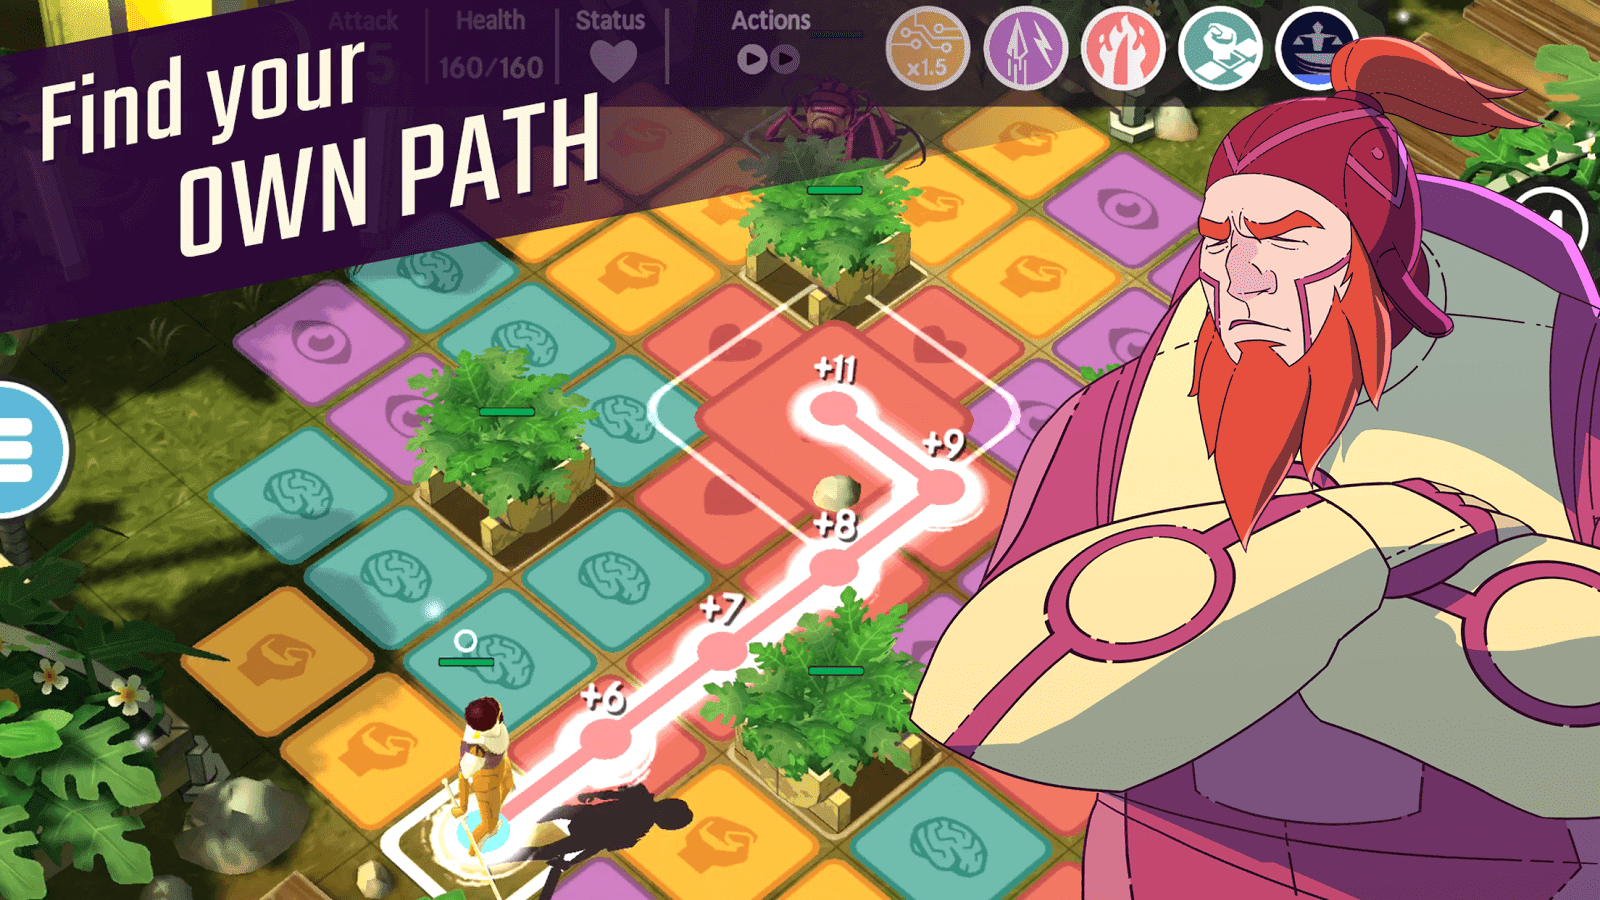 Ticket to Earth v 1.6.26 apk